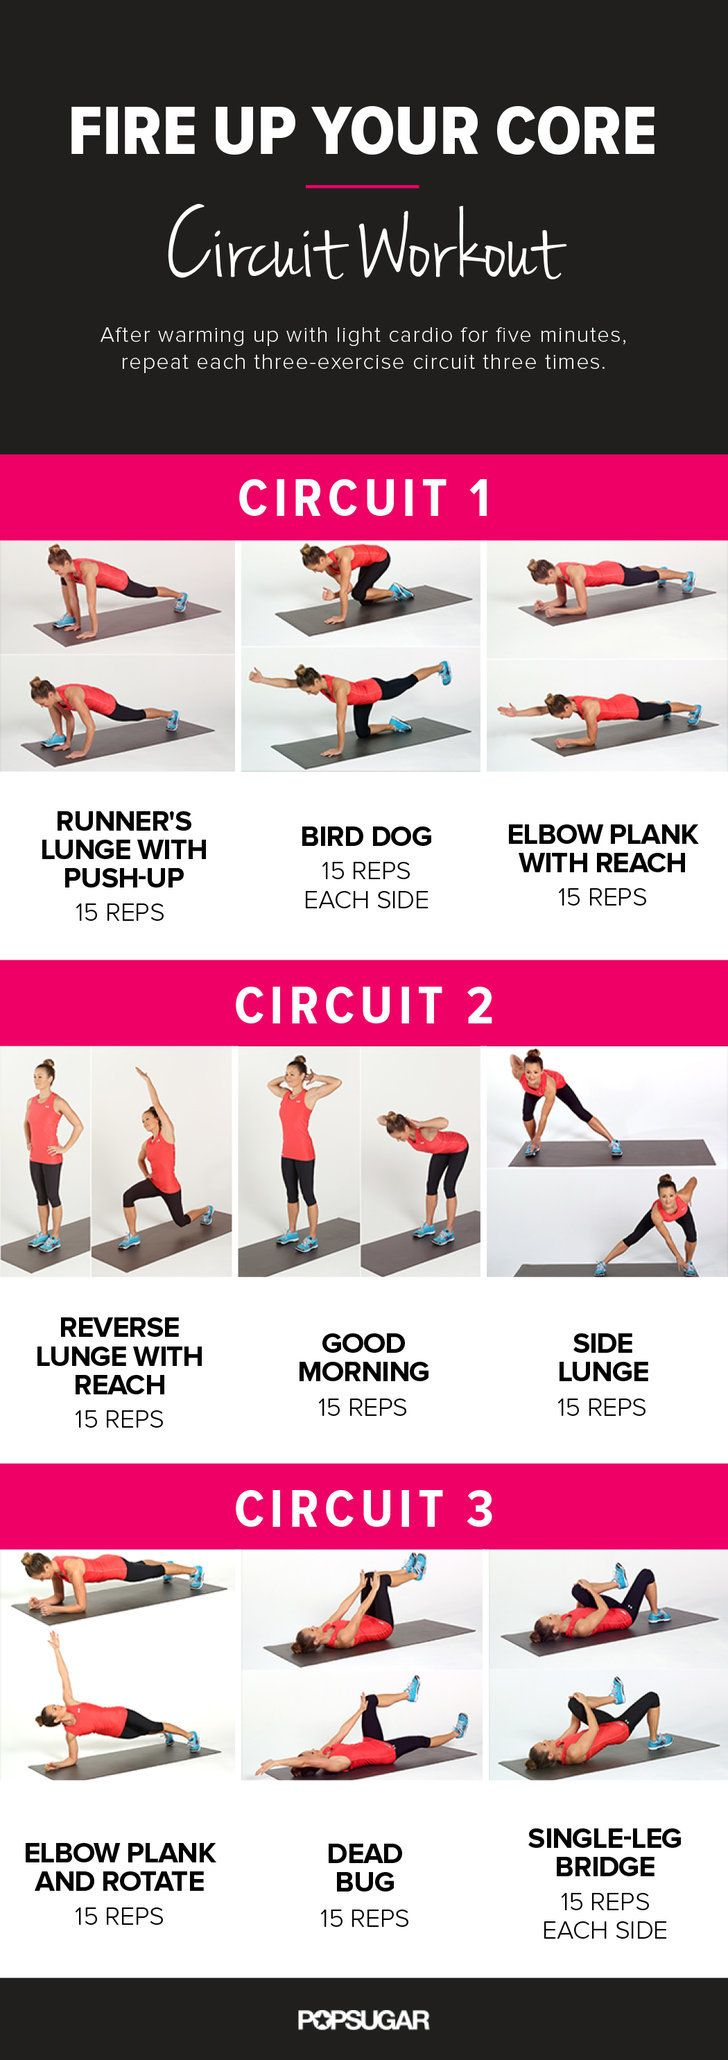 While your core is certainly targeted, your whole body will be feeling the burn with this dynamic core circuit workout that combines strength-training moves with light cardio. Just print out this poster, and tone your core at home, the office, or the gym.